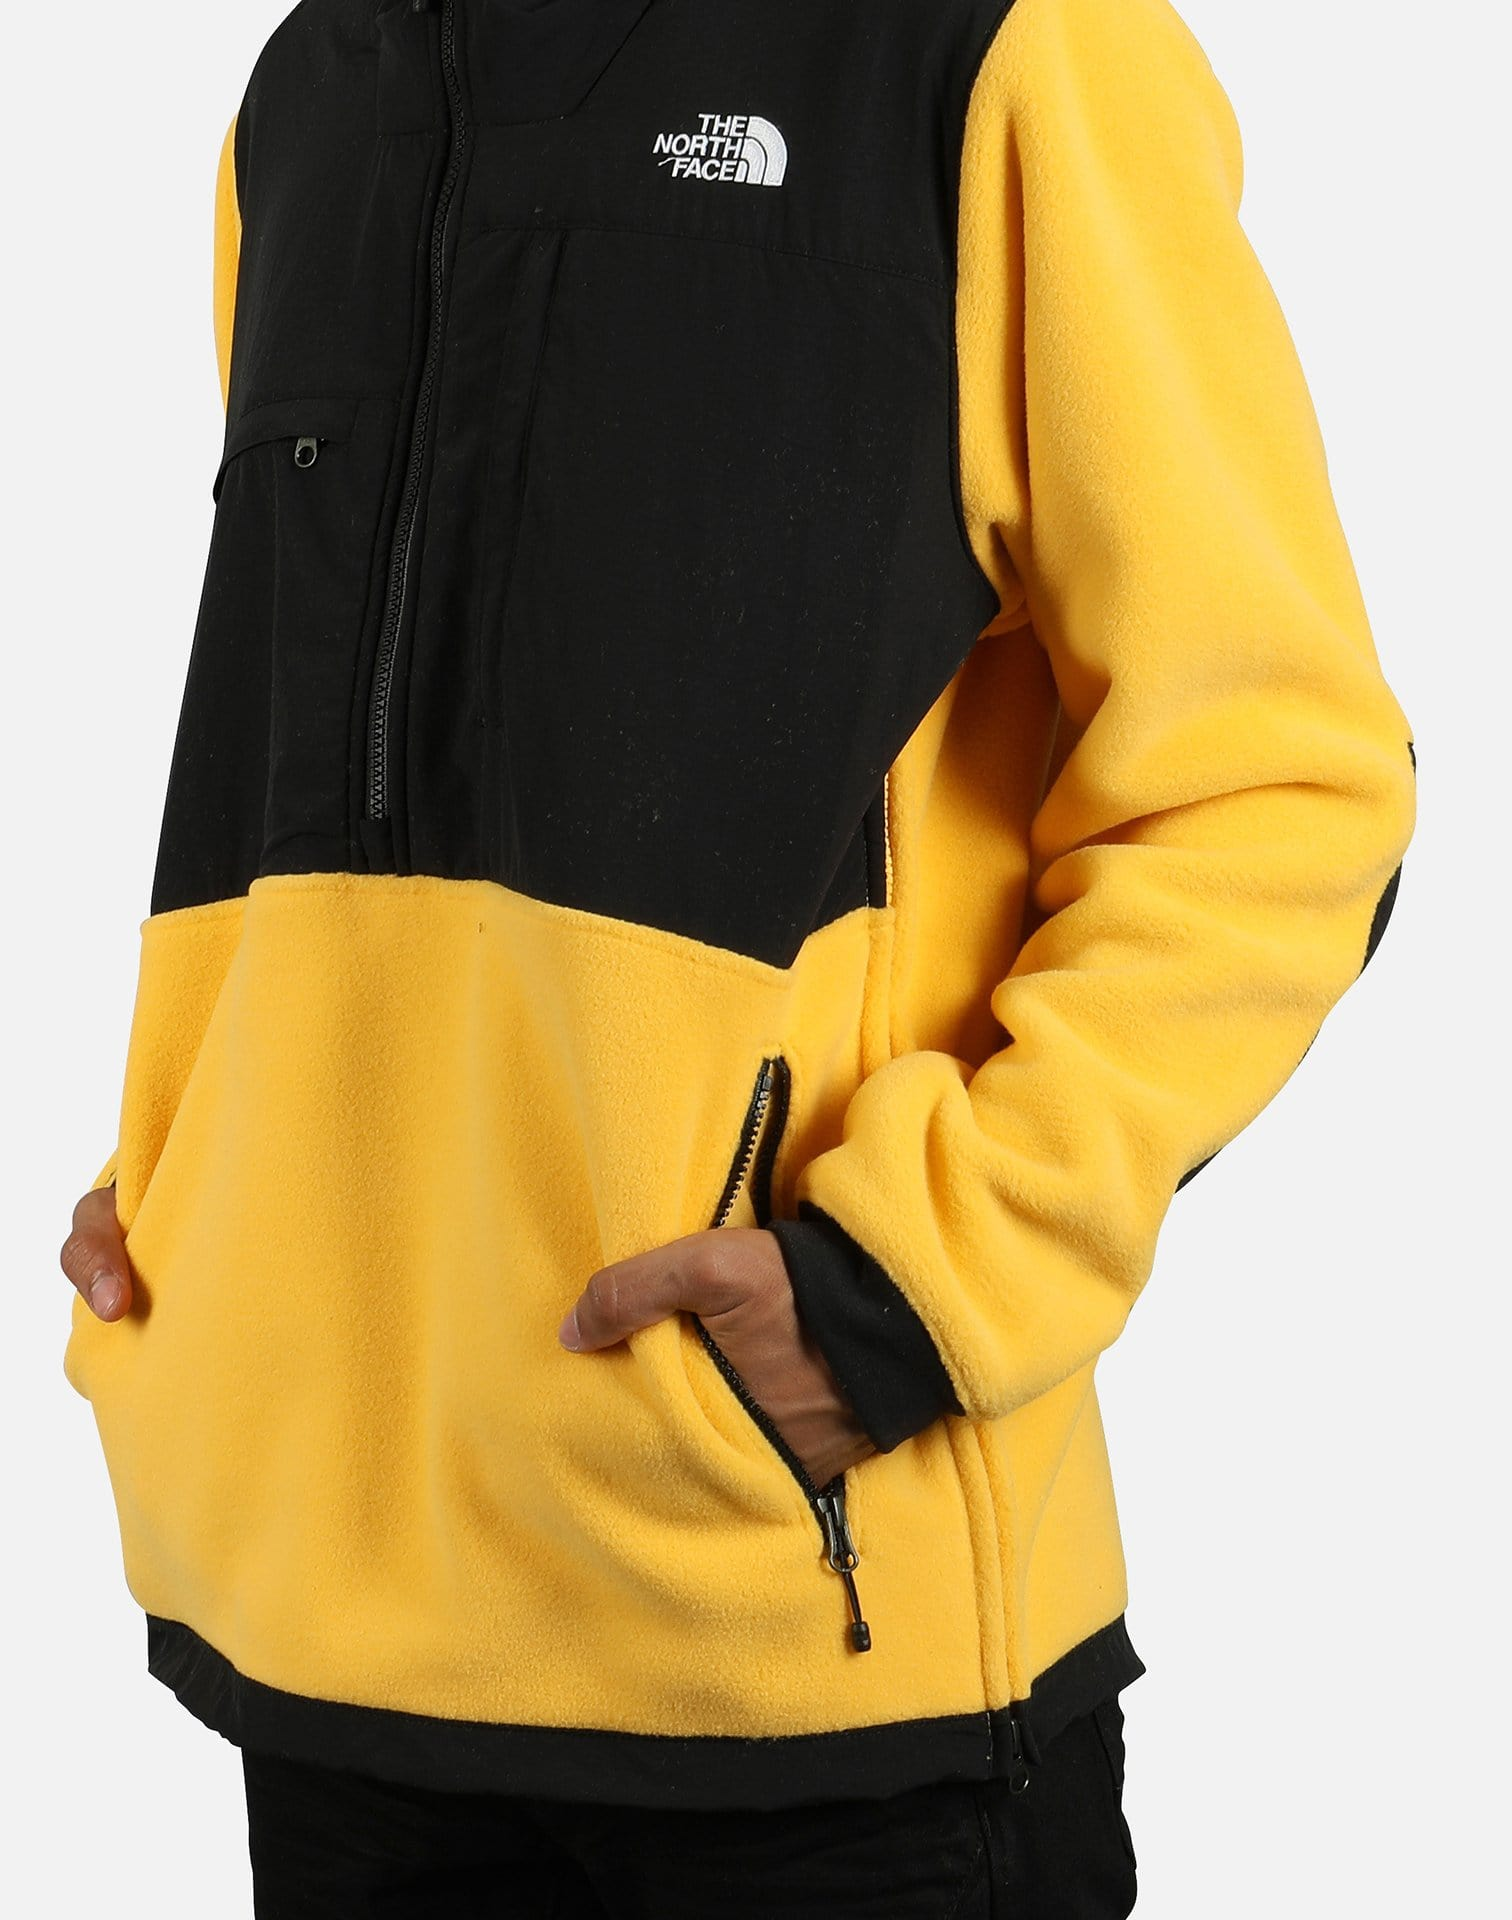 The North Face Men's Denali Anorak Jacket